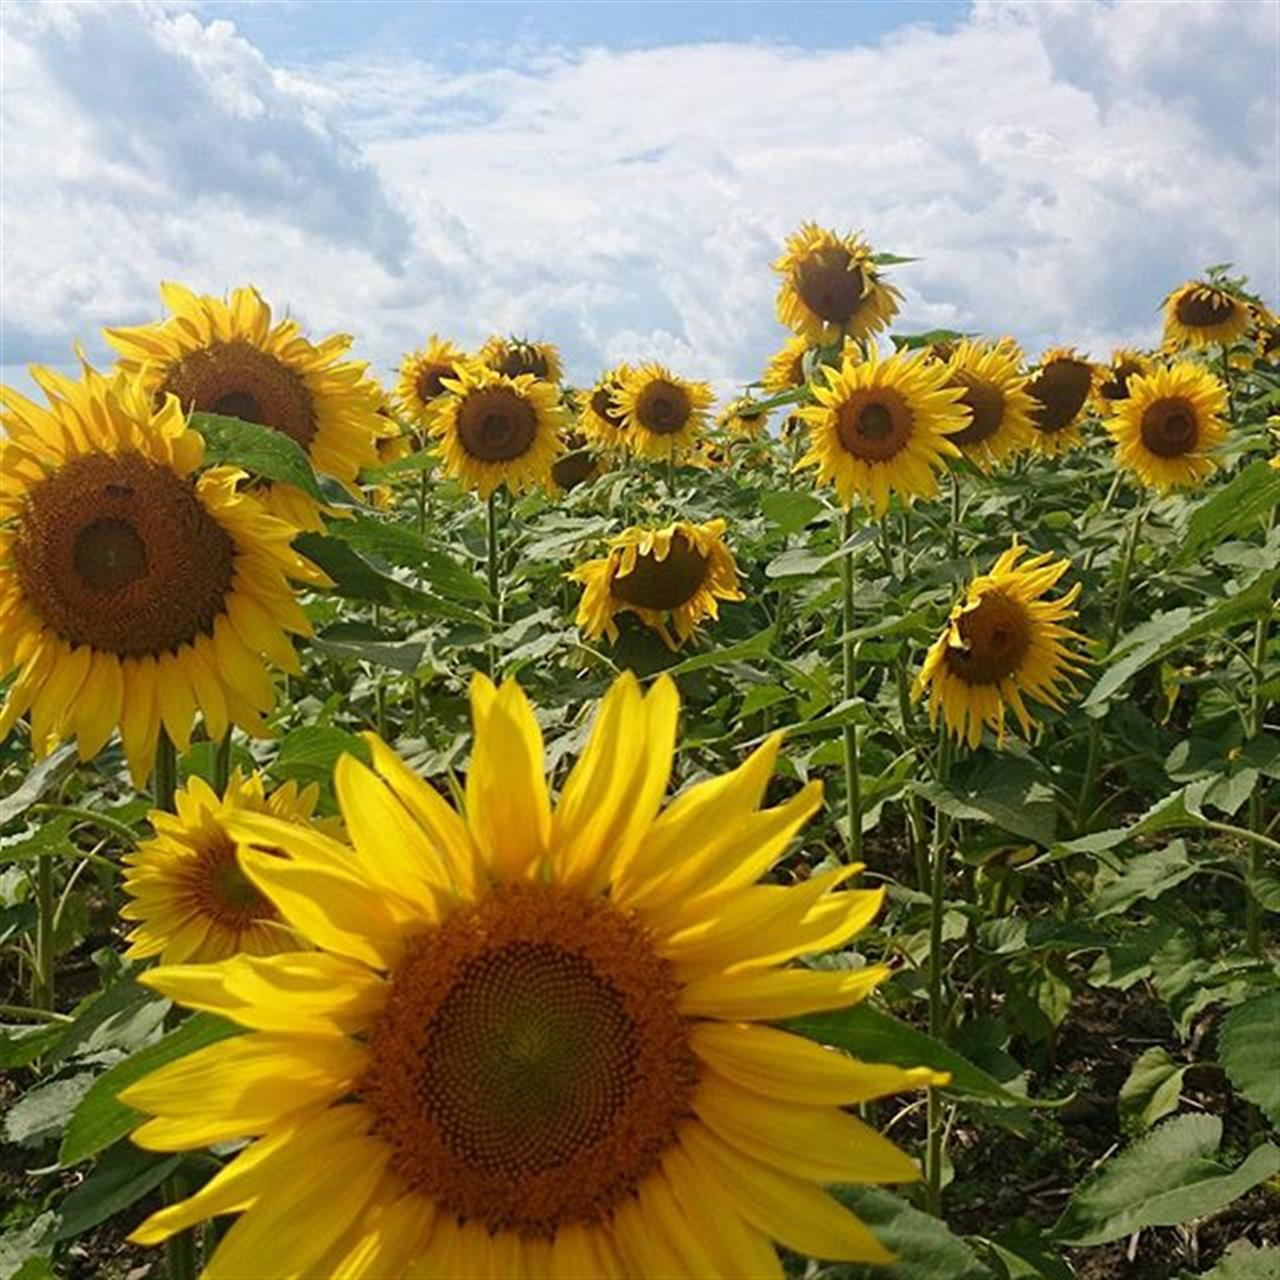 #Ithaca #sunflowers